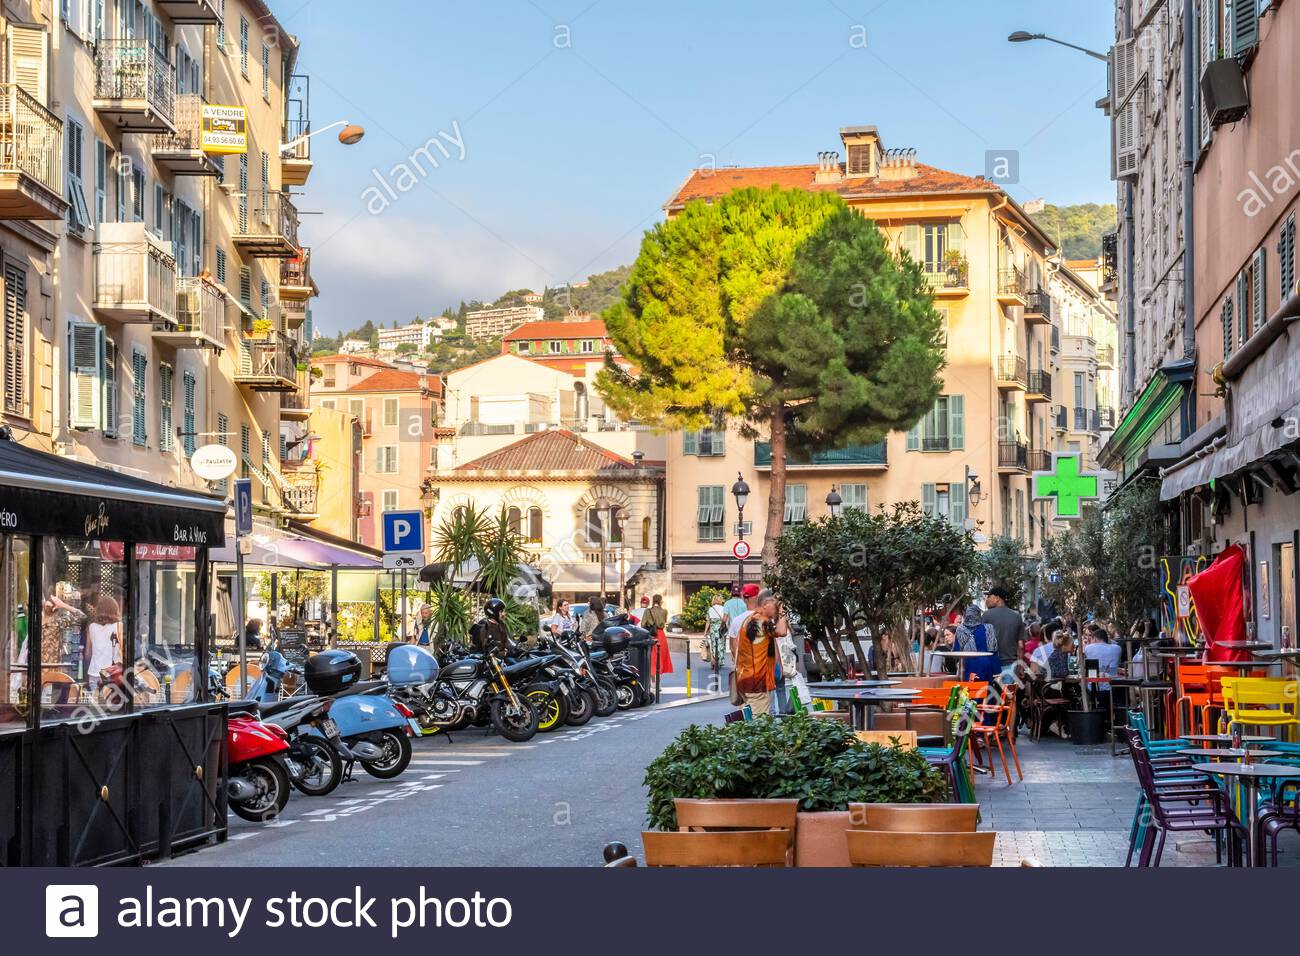 Cafes and shops fill the crowded historic center of Old Town Vieux Nice on the French Riviera in Nice, France. Stock Photo